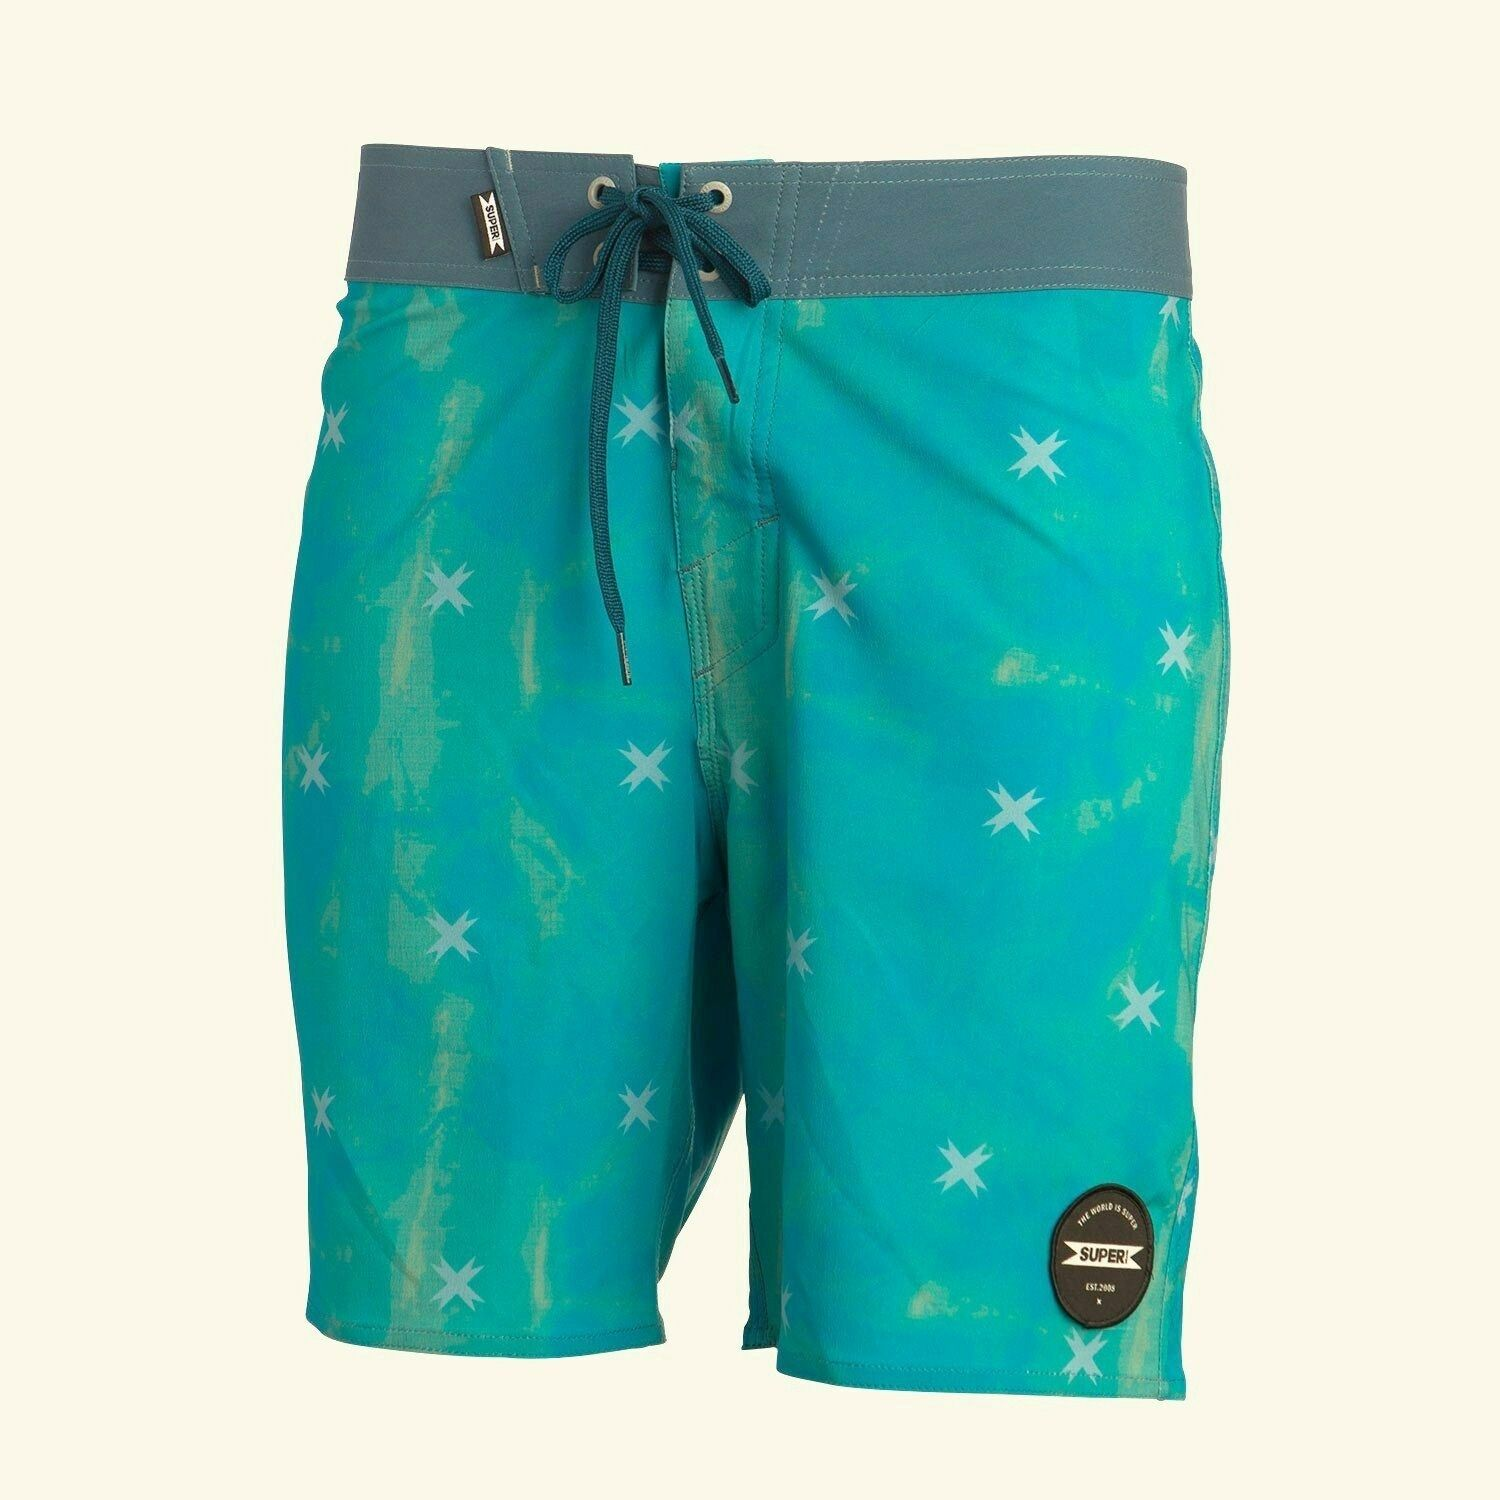 SUPER Brand Men's Boardshorts